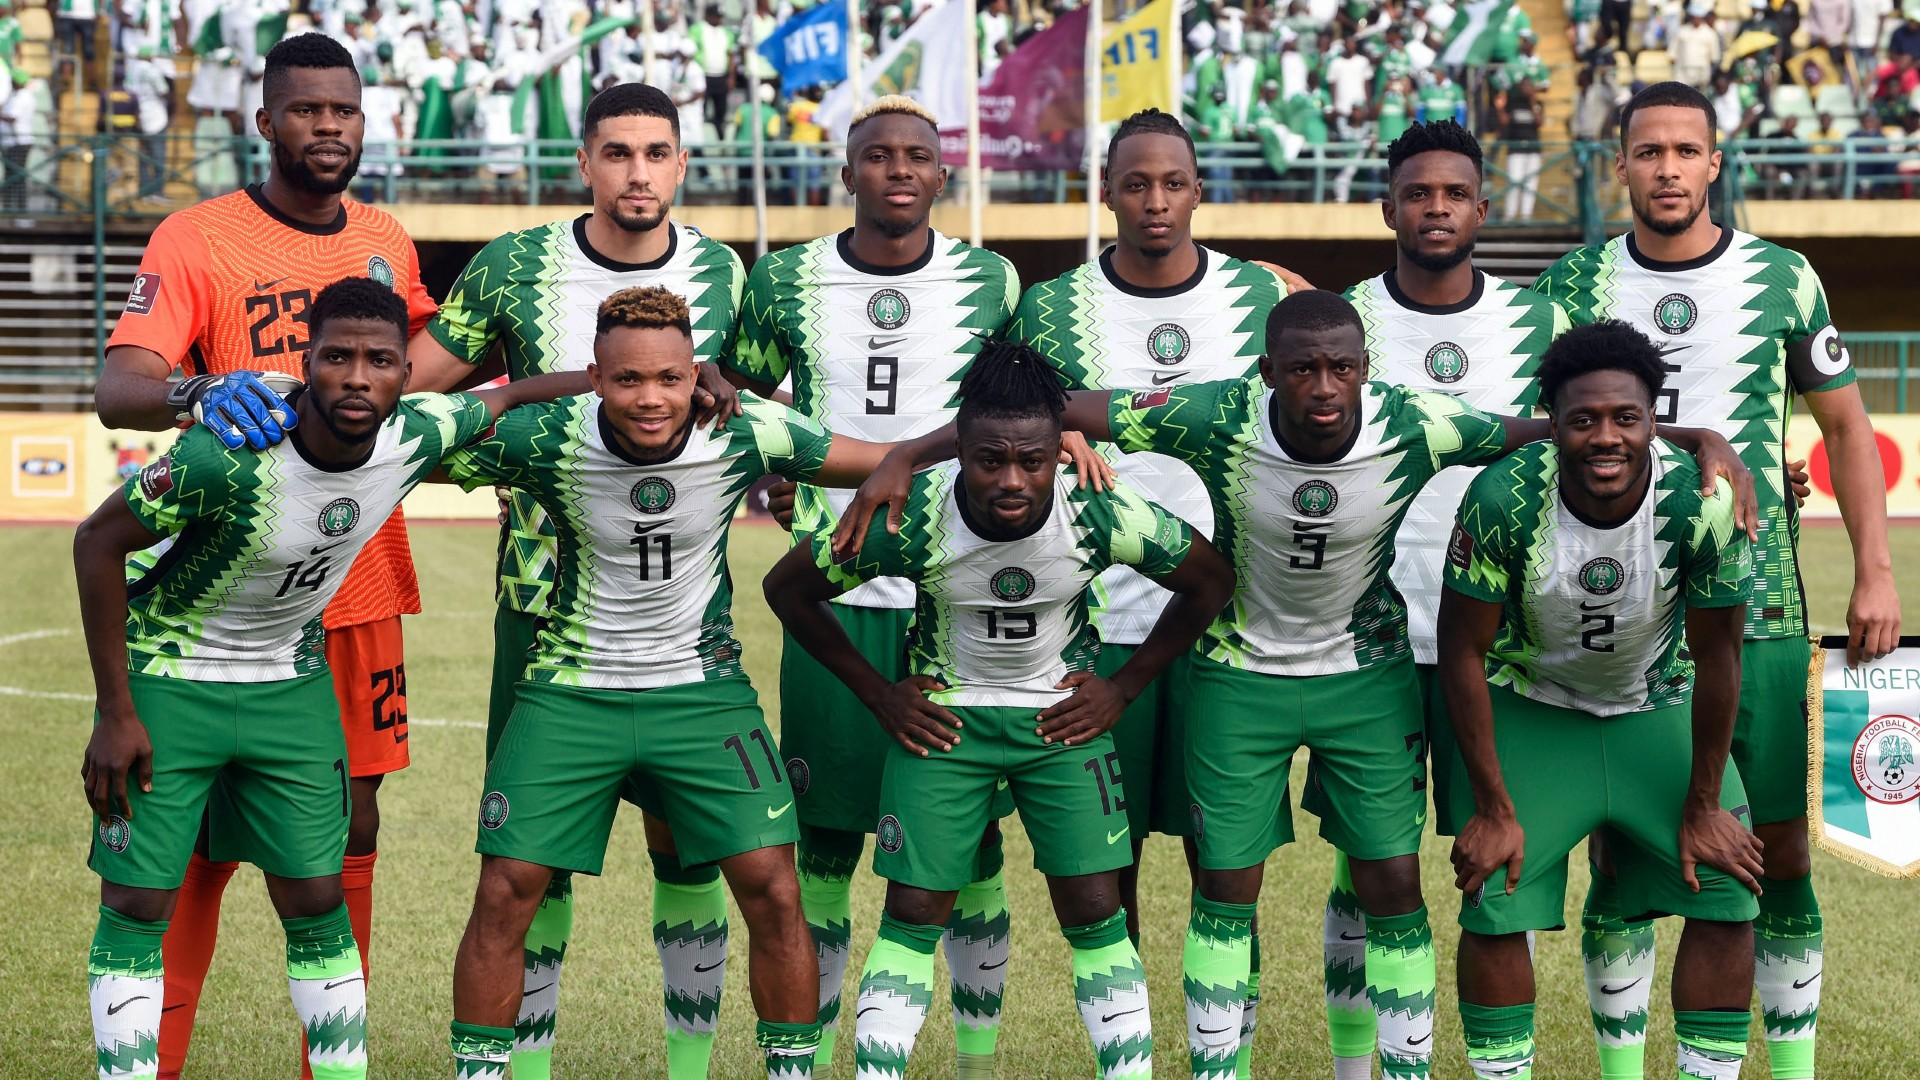 2022 World Cup Qualifiers: Centurion Musa and Osimhen spearhead Nigeria's revenge mission against Central African Republic